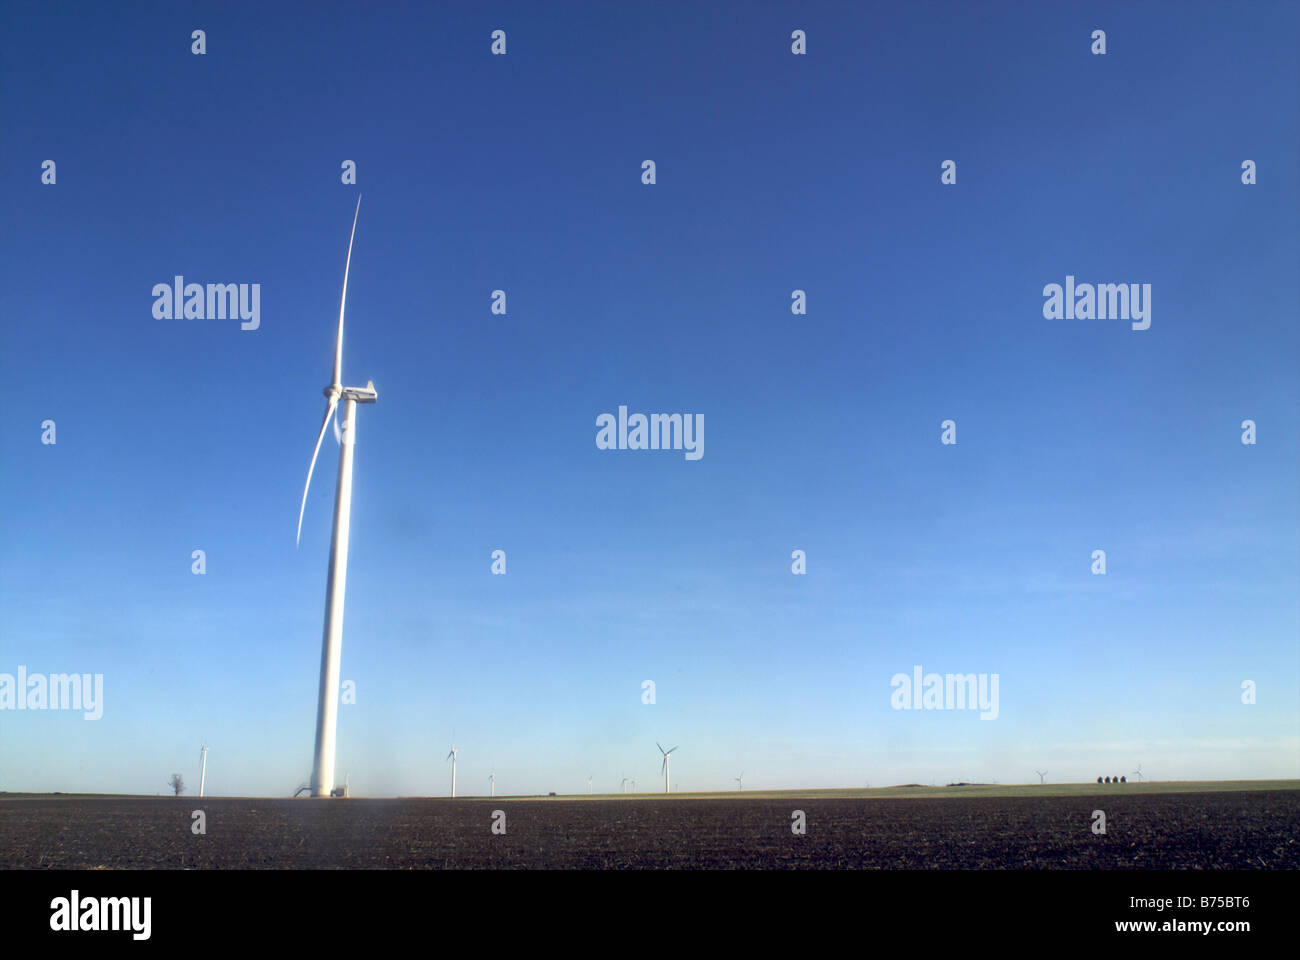 Wind turbines, with other turbines in distance - Stock Image